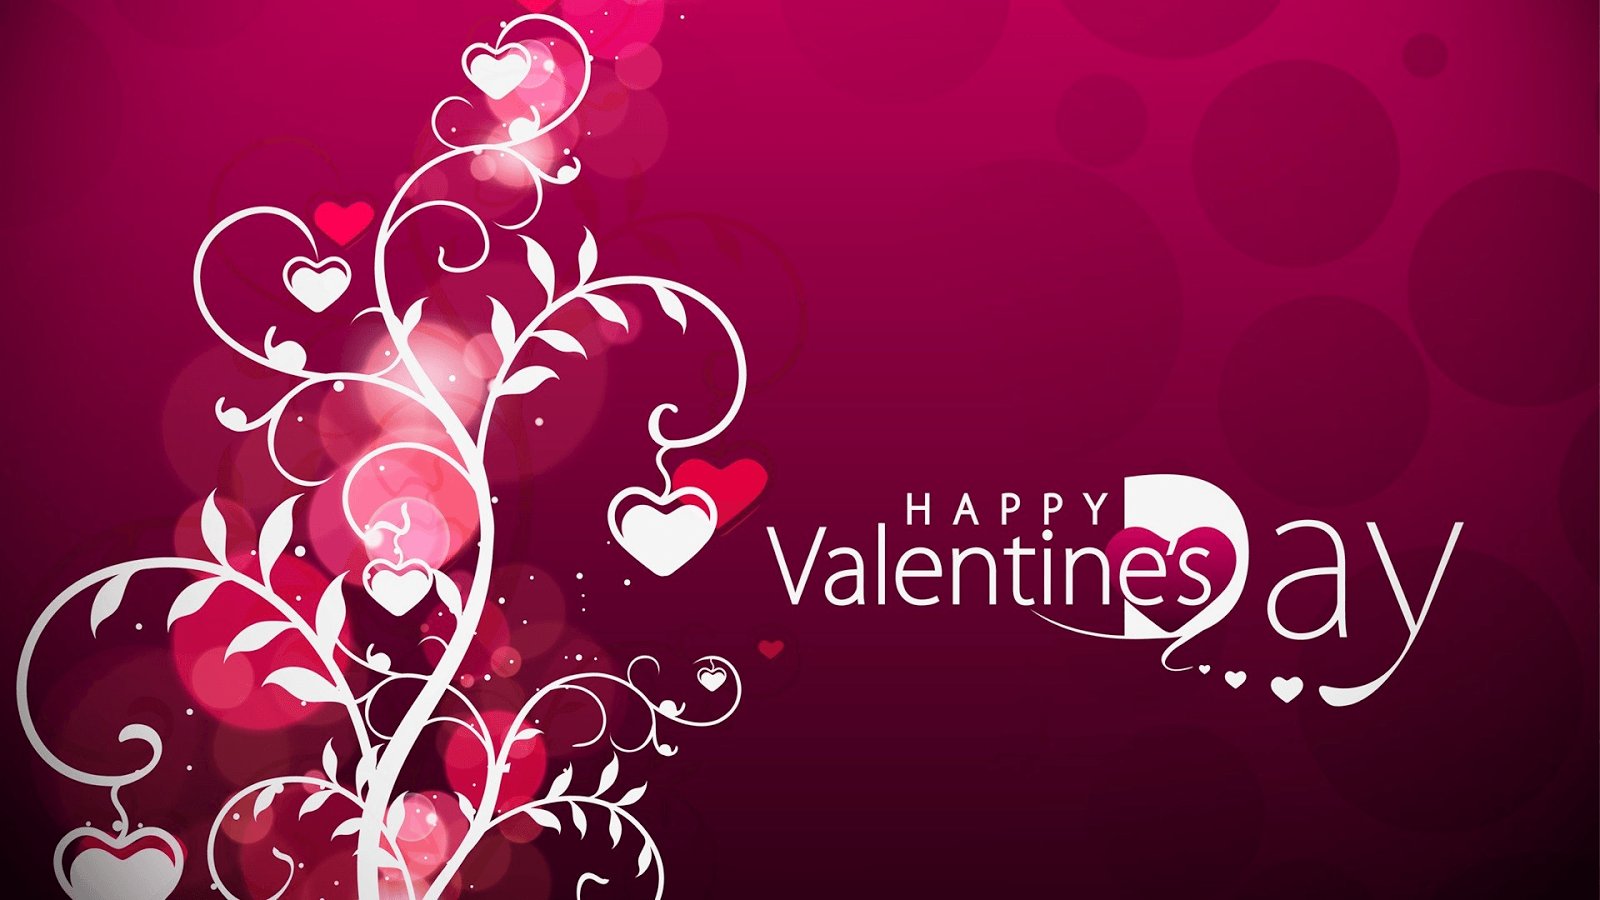 happy valentines day wallpapers | images | photos | hd greeting